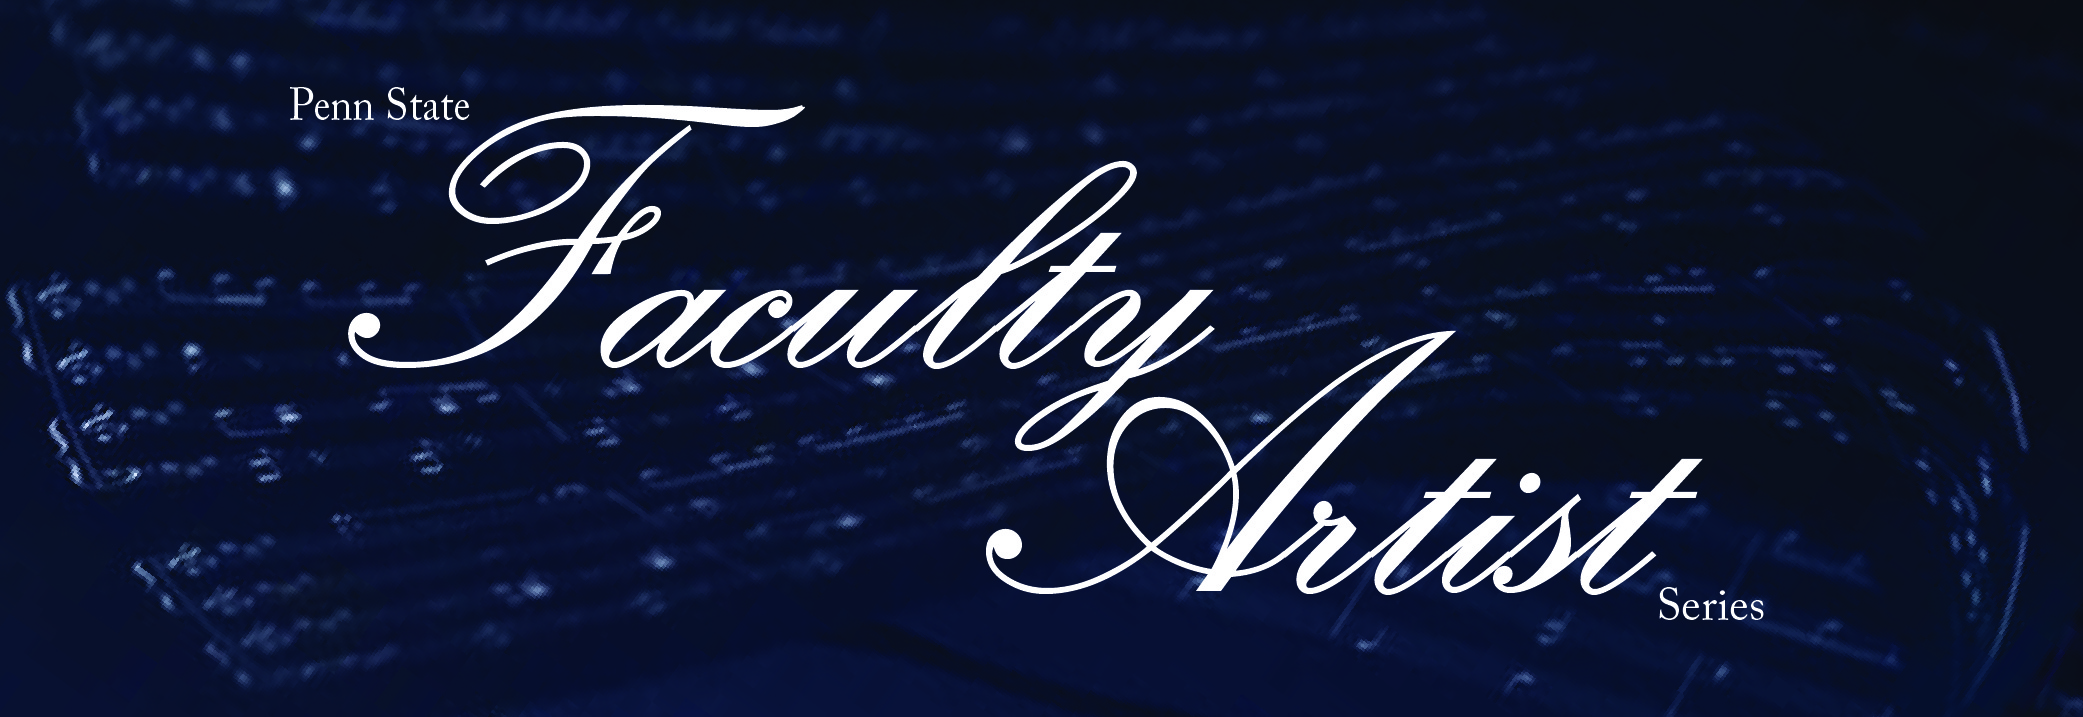 faculty artist series logo